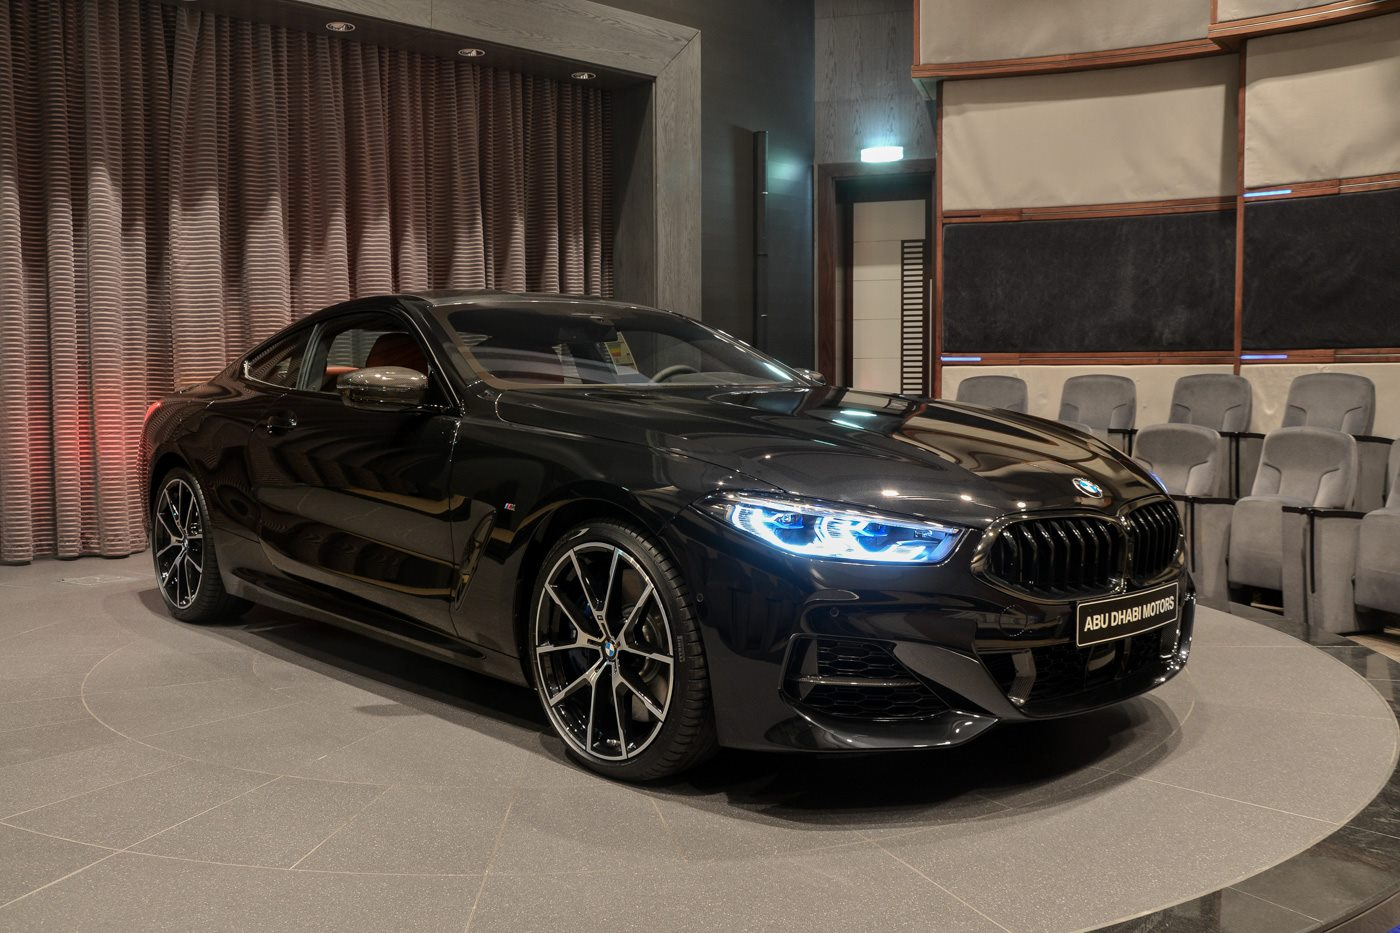 Individual Bmw M850i Arrives In Abu Dhabi Wearing Carbon